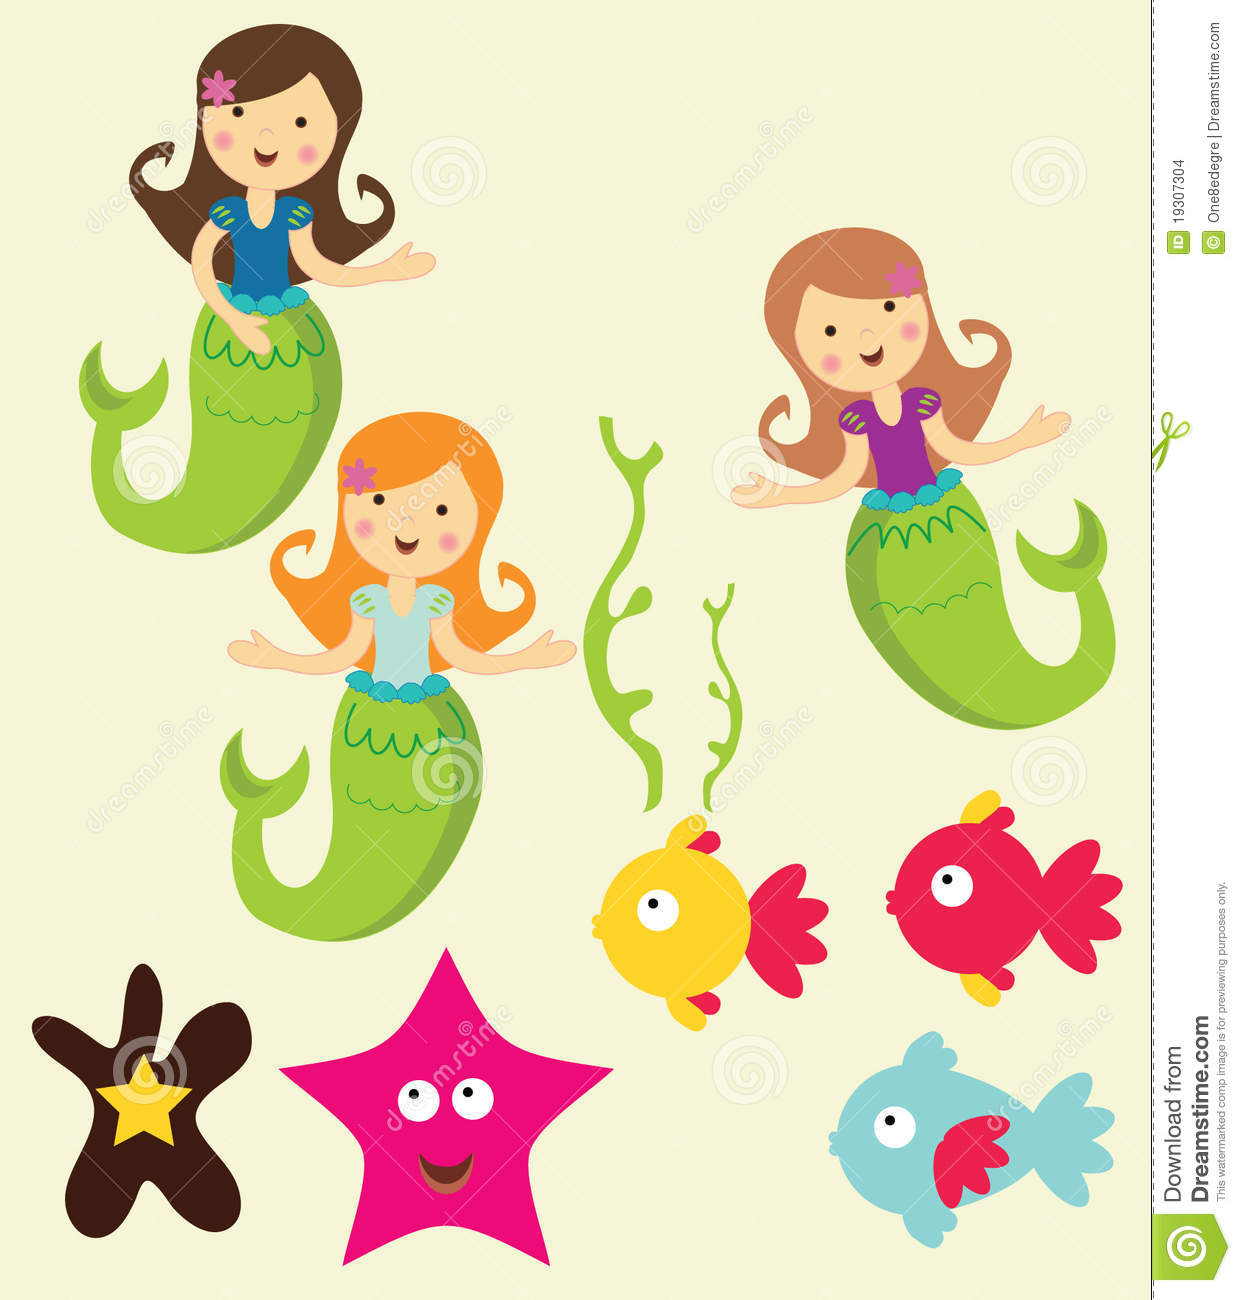 Under The Sea Clip Art Royalty Free Stock Images - Image: 30293259